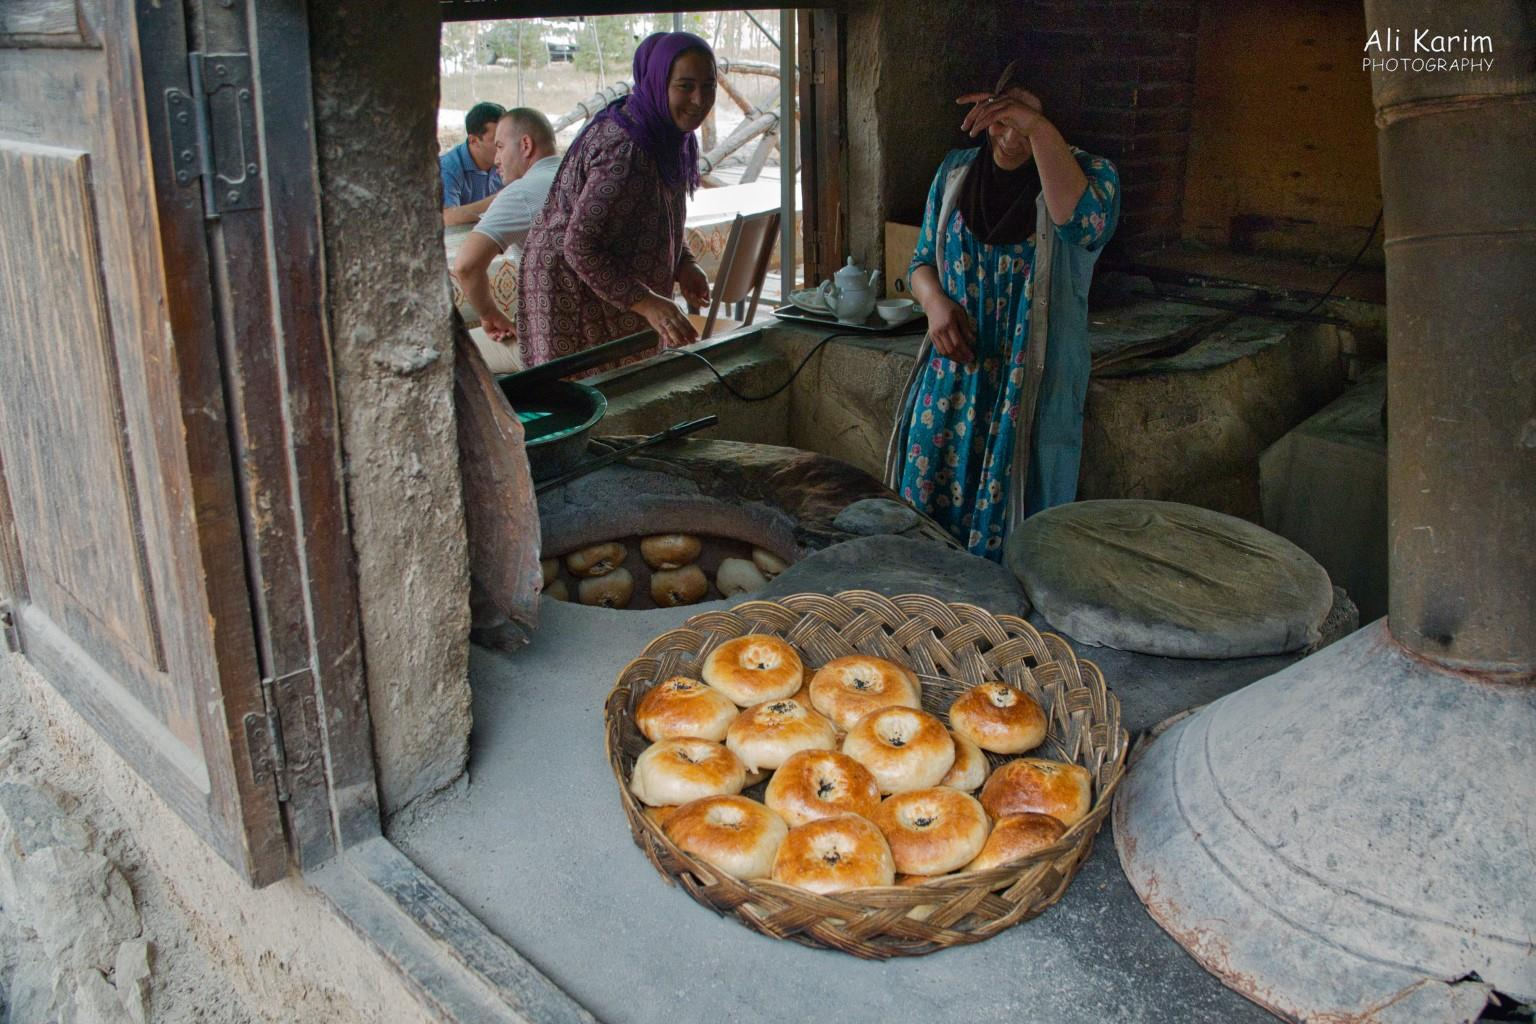 Dushanbe, Tajikistan Bread rolls, baked in a tandoor, were everywhere. These ladies had a good laugh at me taking their picture